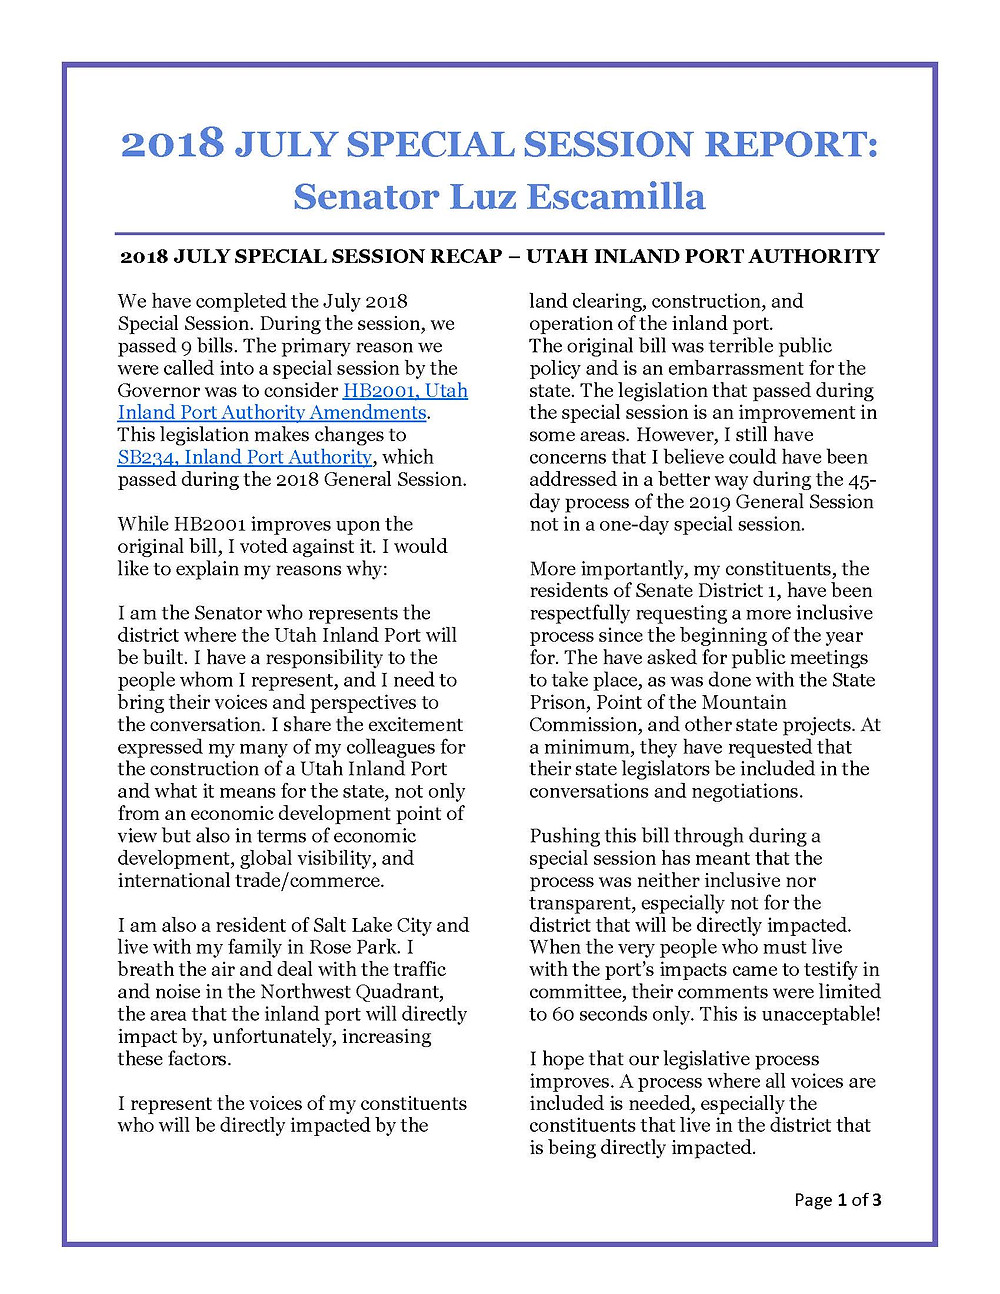 July 2018 Special Session Report Page 3 of 3